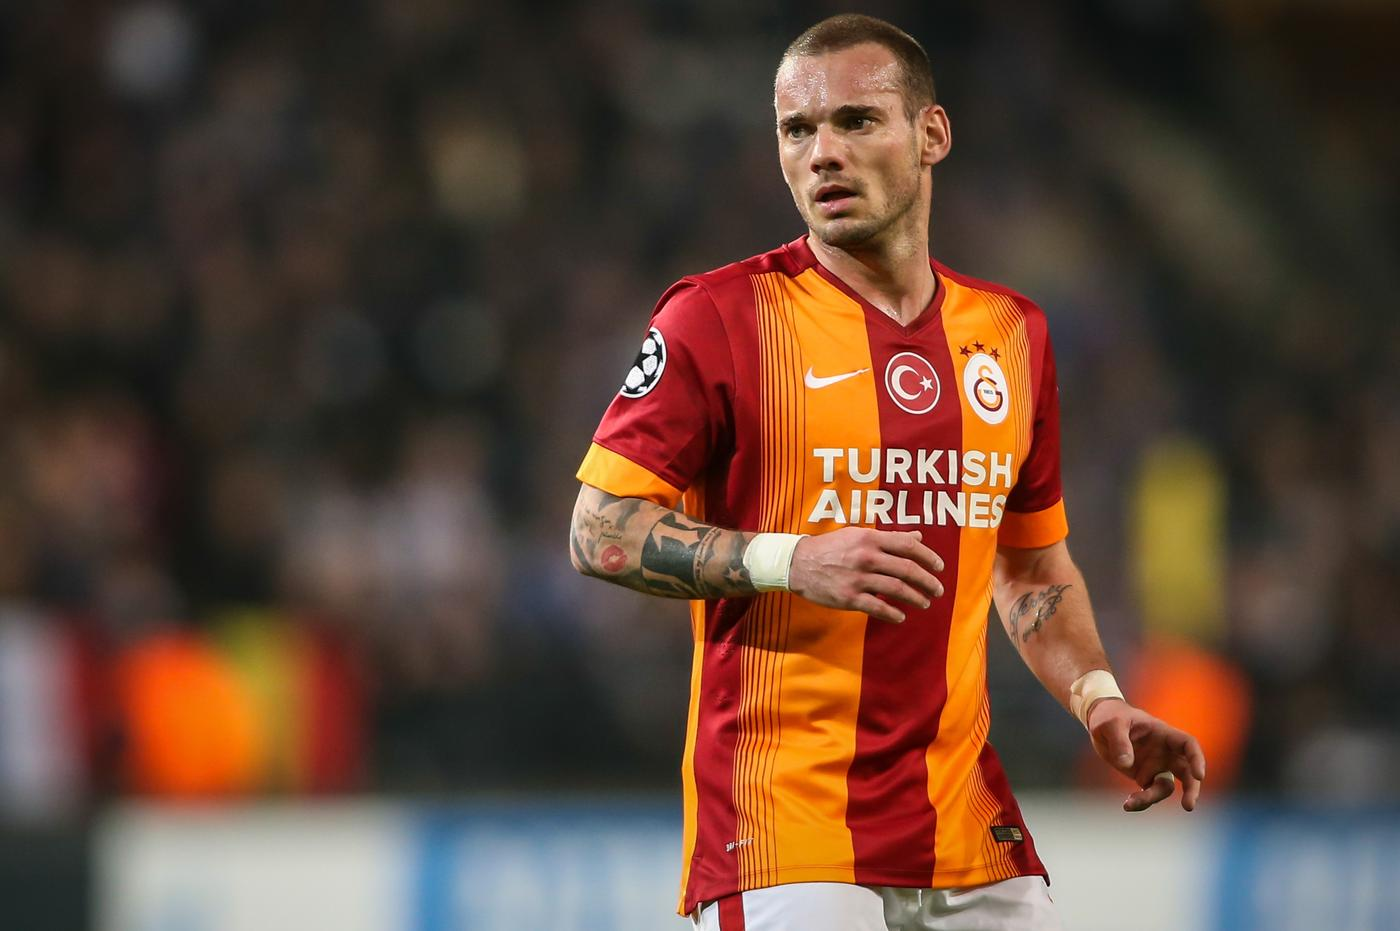 Chelsea made summer bid for Manchester United transfer target Wesley Sneijder, confirms Galatasaray president